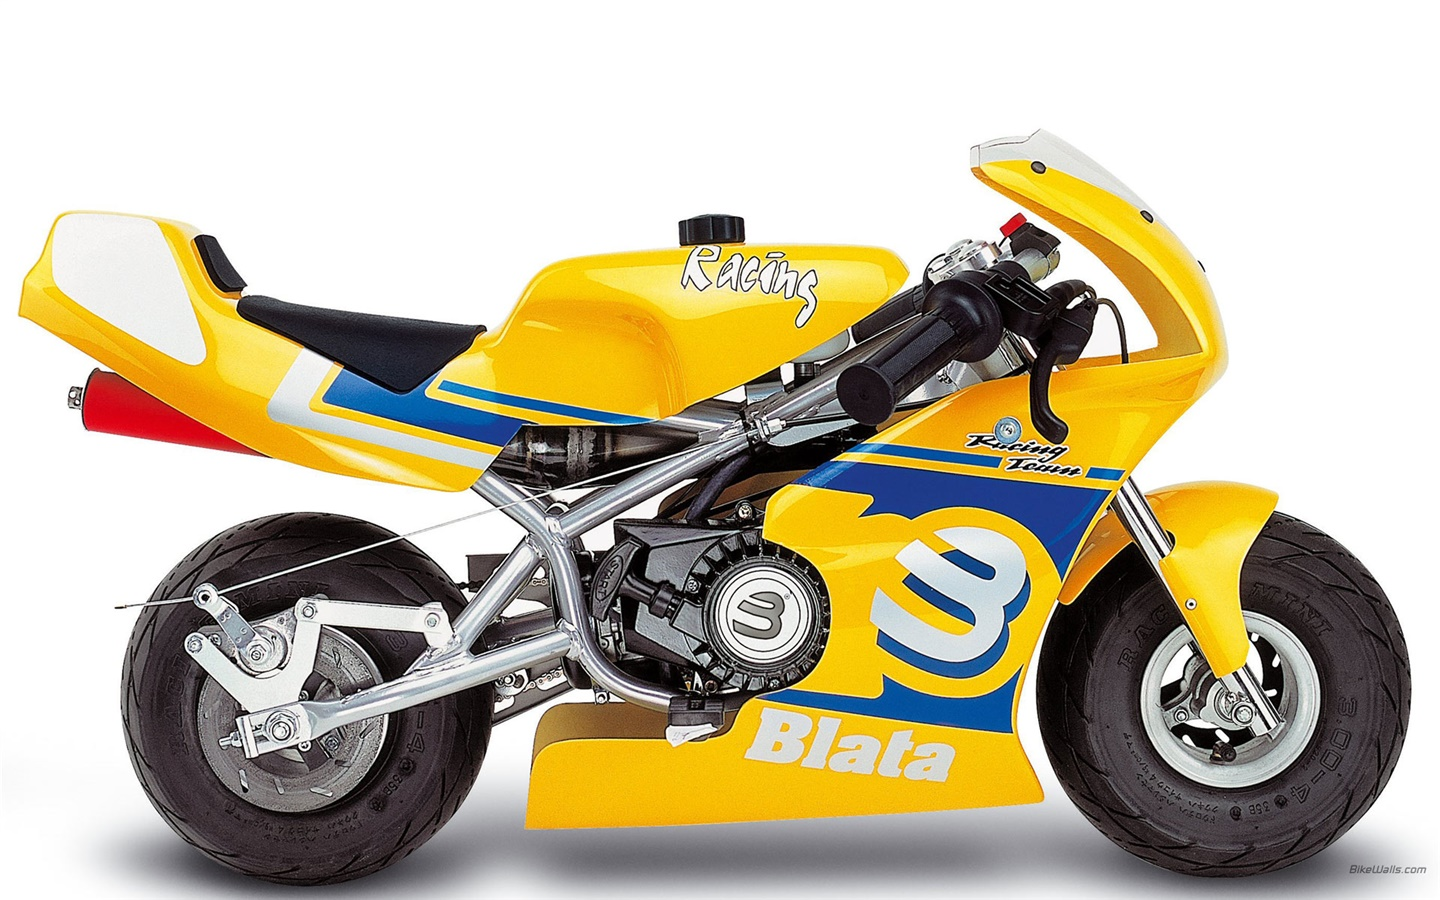 Blata Minibike yellow motorcycle 1440x900 wallpaper